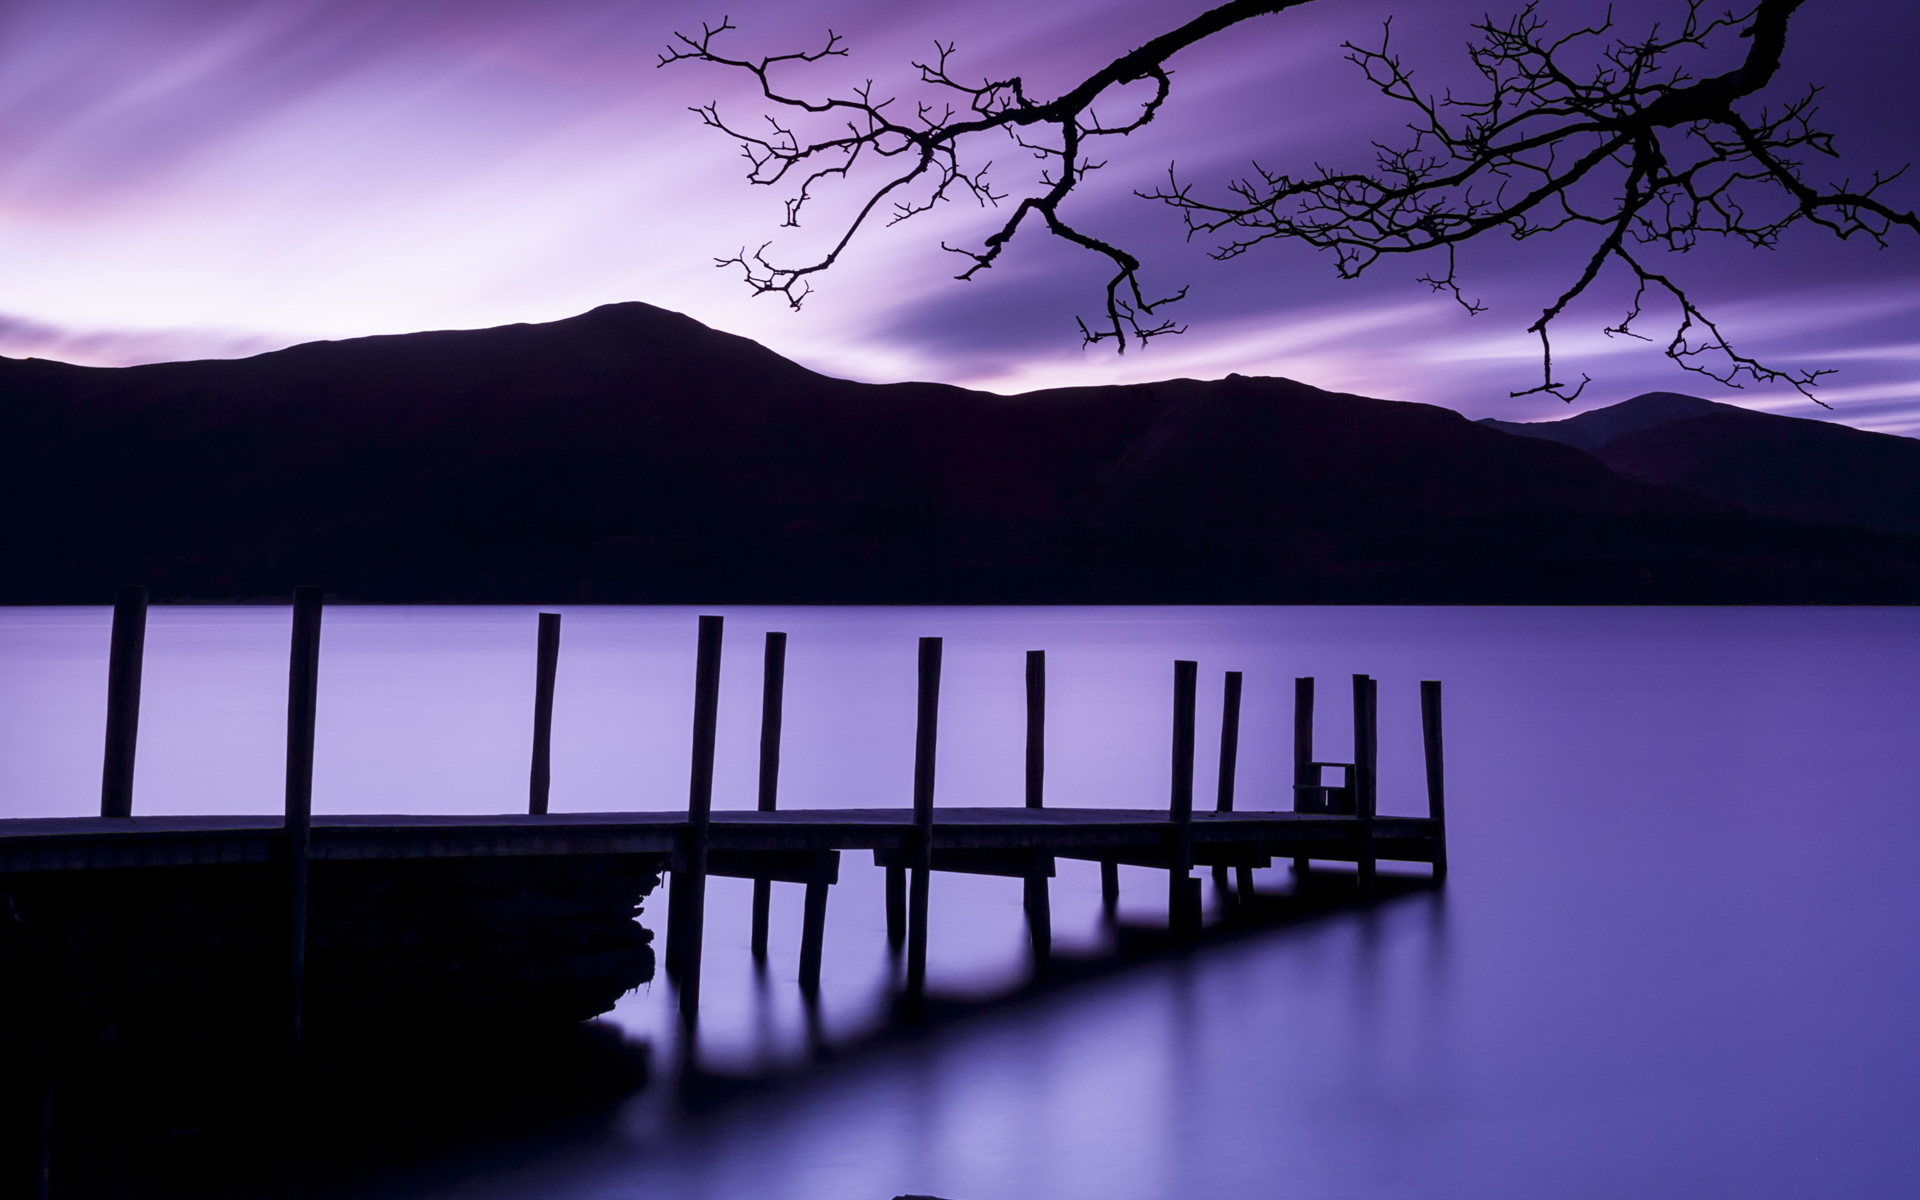 Purple Dusk 4822.48 Kb